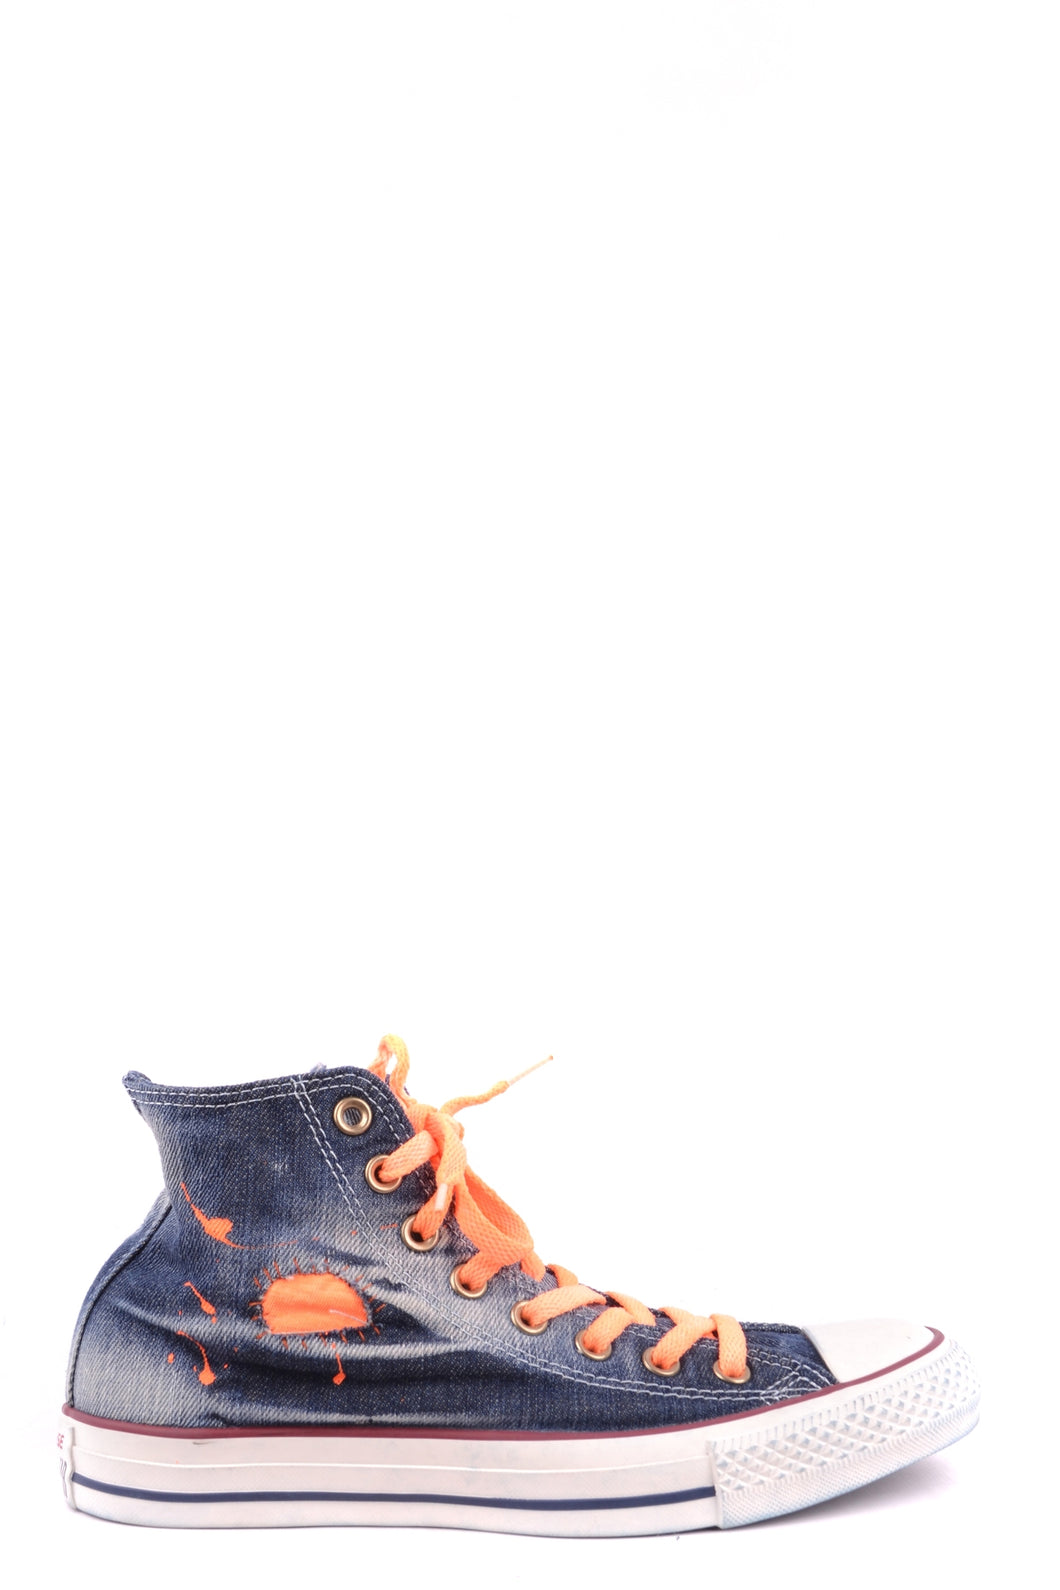 New CONVERSE ALL STAR Women's Black with Orange High Tops, multi sizes - Junkdrawercoolfinds.com